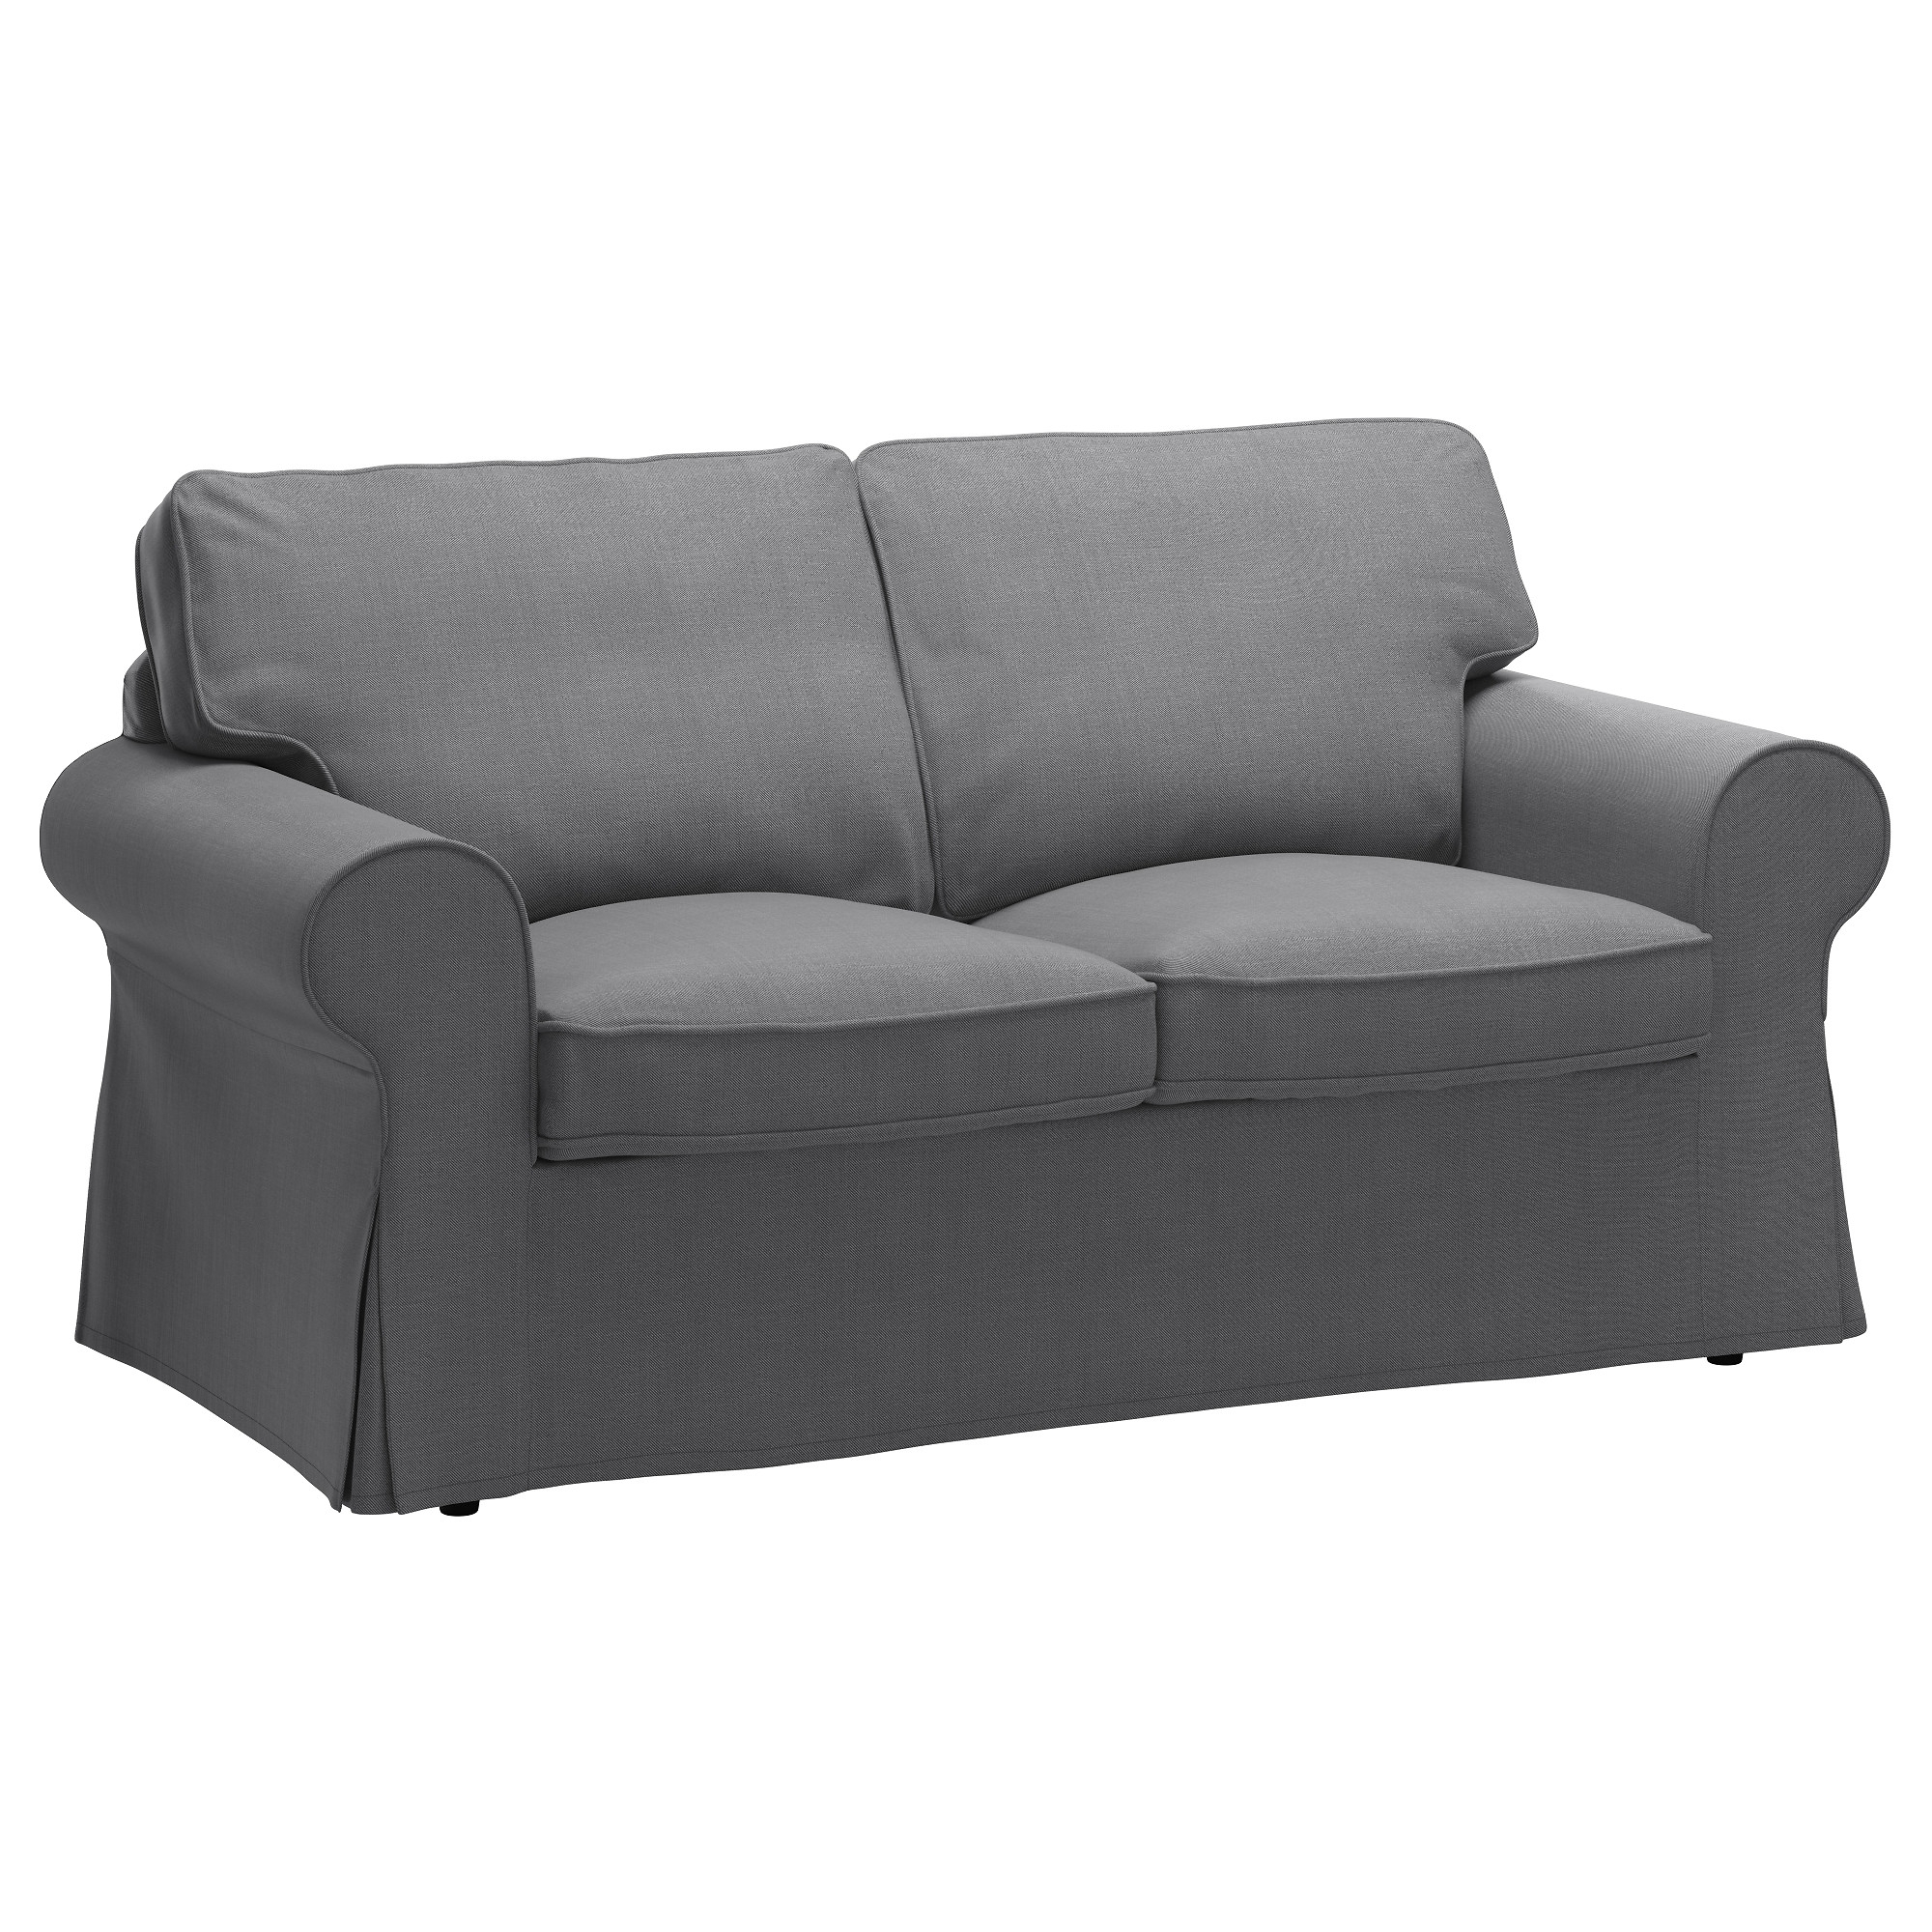 Most Up To Date Sofa : Ikea Karlstad 2 Seater Sofa Gumtree Ikea Karlstad Sofa For Small 2 Seater Sofas (View 6 of 15)